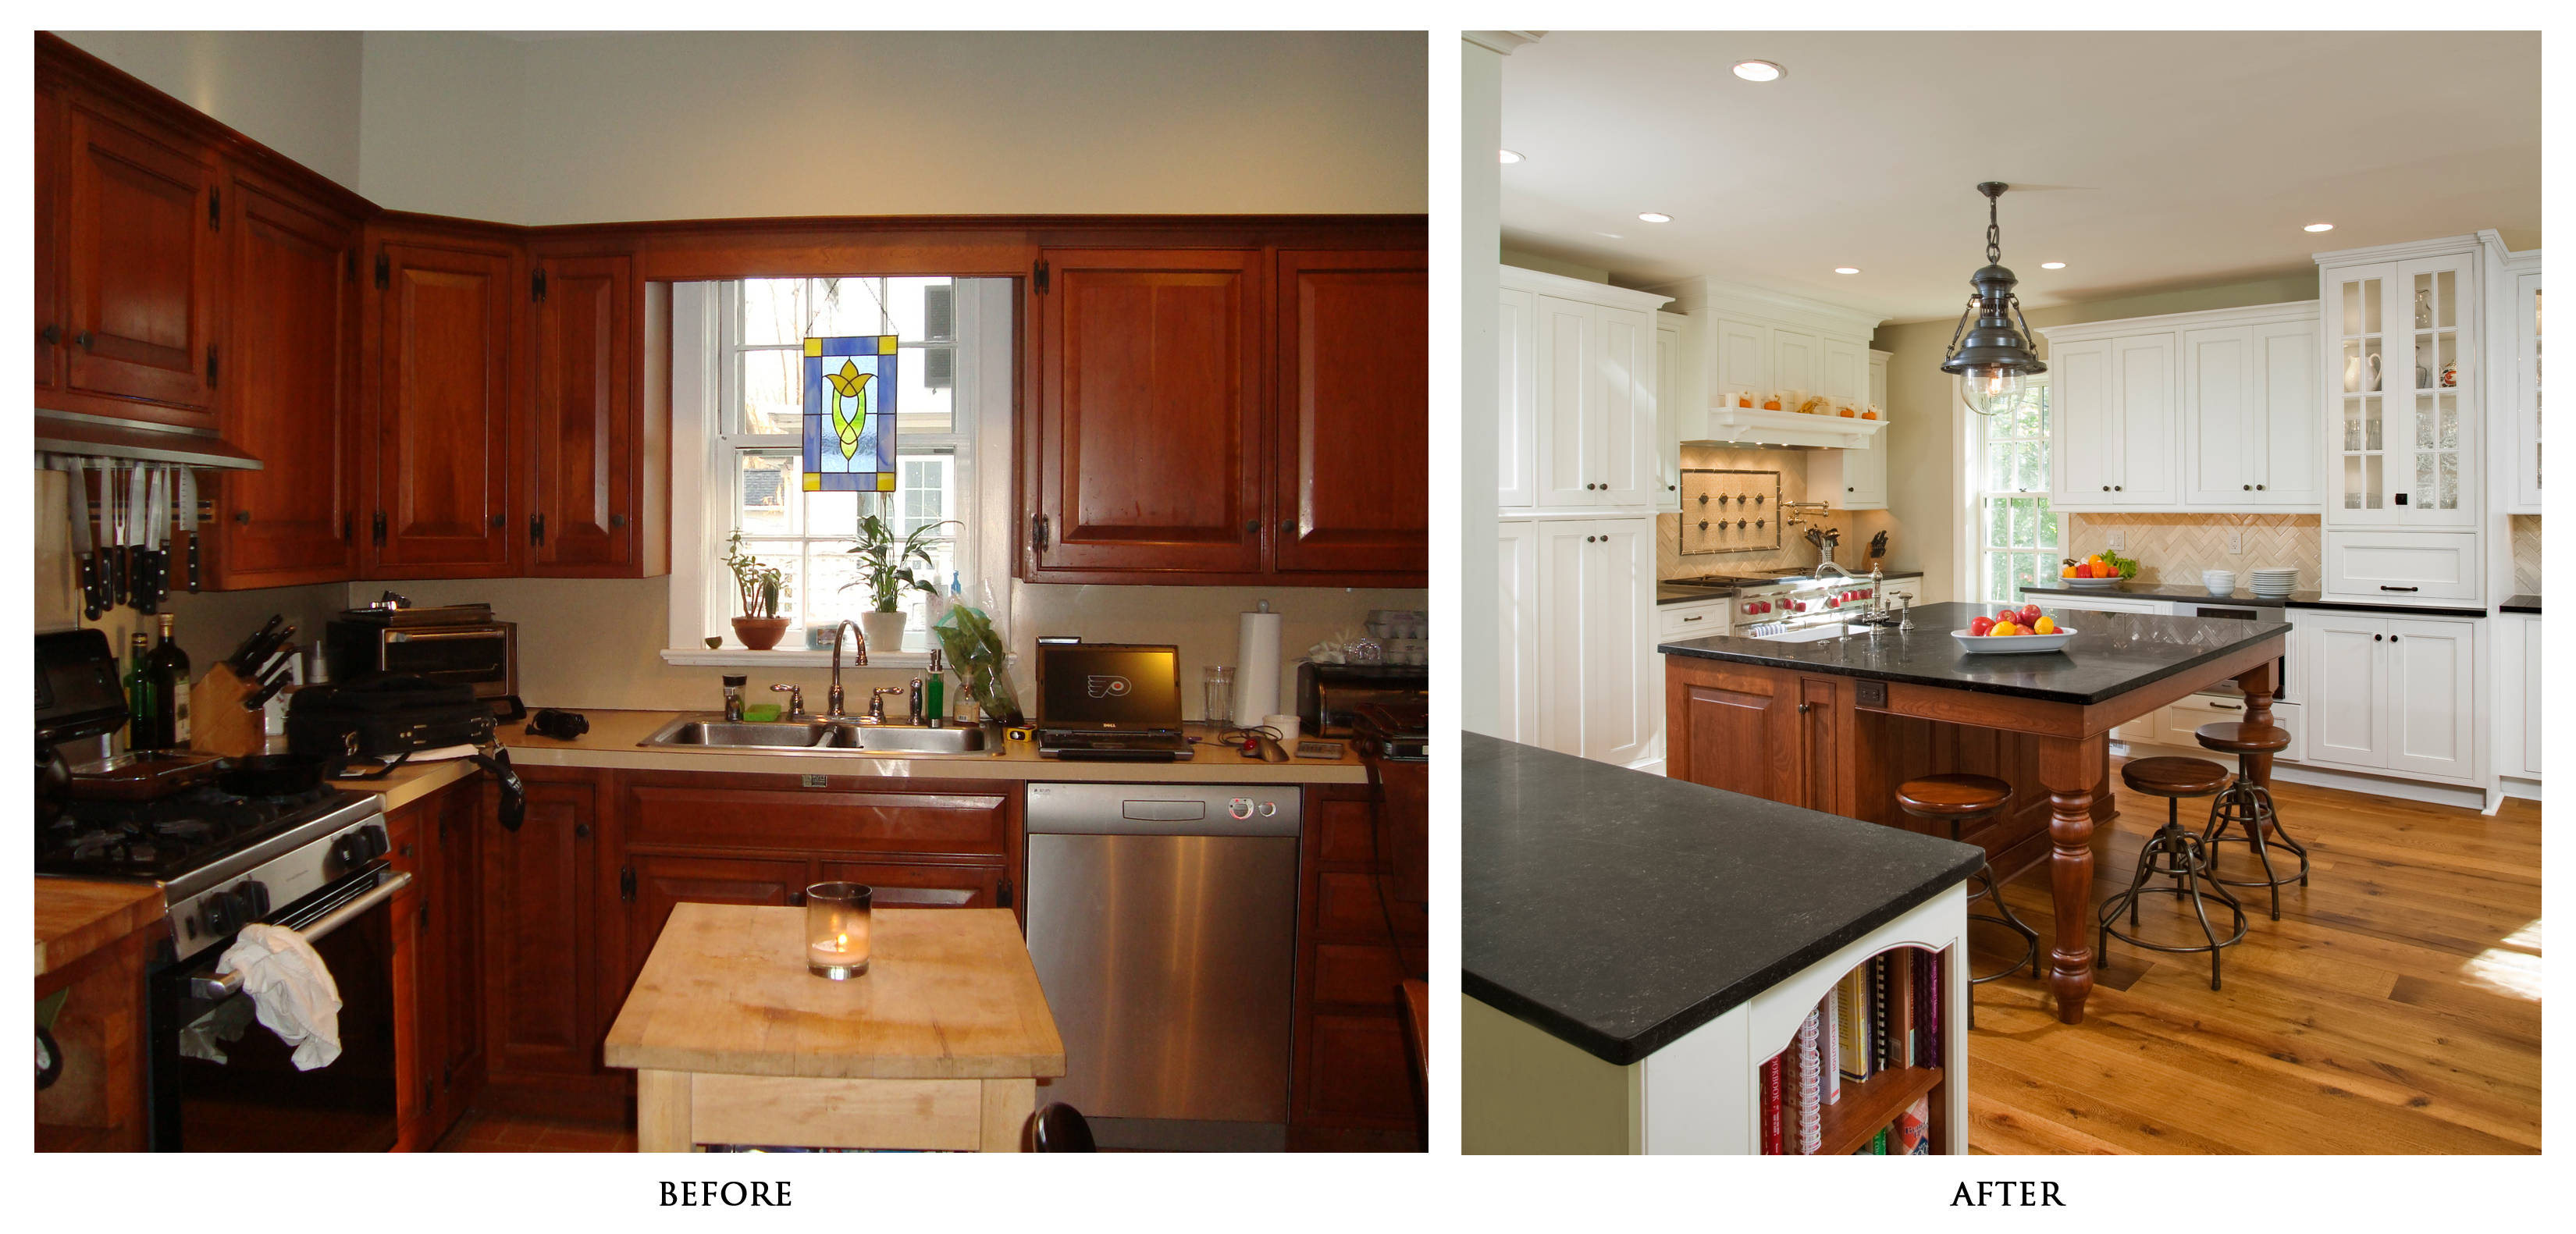 Before And After Kitchen Remodel Interior get the fresh and cool outlook inspiration with kitchen remodeling